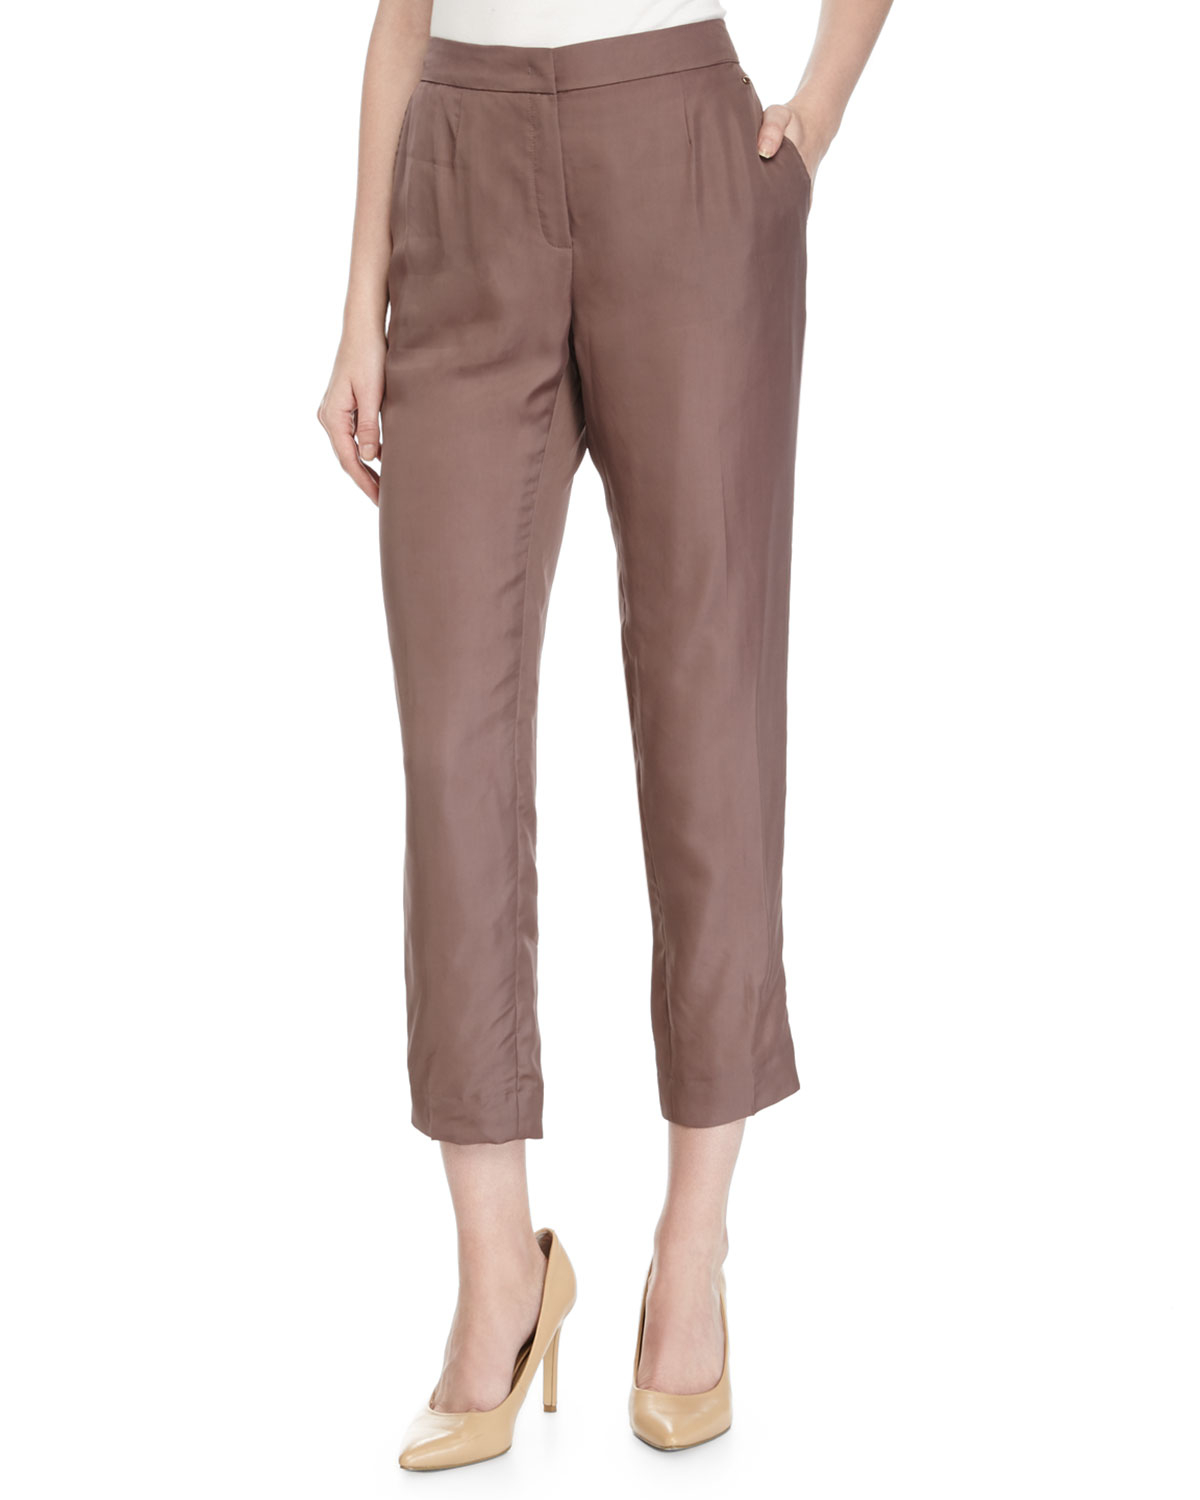 Men's Pants, Twill Pants and Wool Pants from sofltappreciate.tk Look your best in Men's pants from sofltappreciate.tk Our selection includes Men's twill pants, wool pants, easy-care styles and much more, all made from sturdy, comfortable fabrics with fine workmanship.